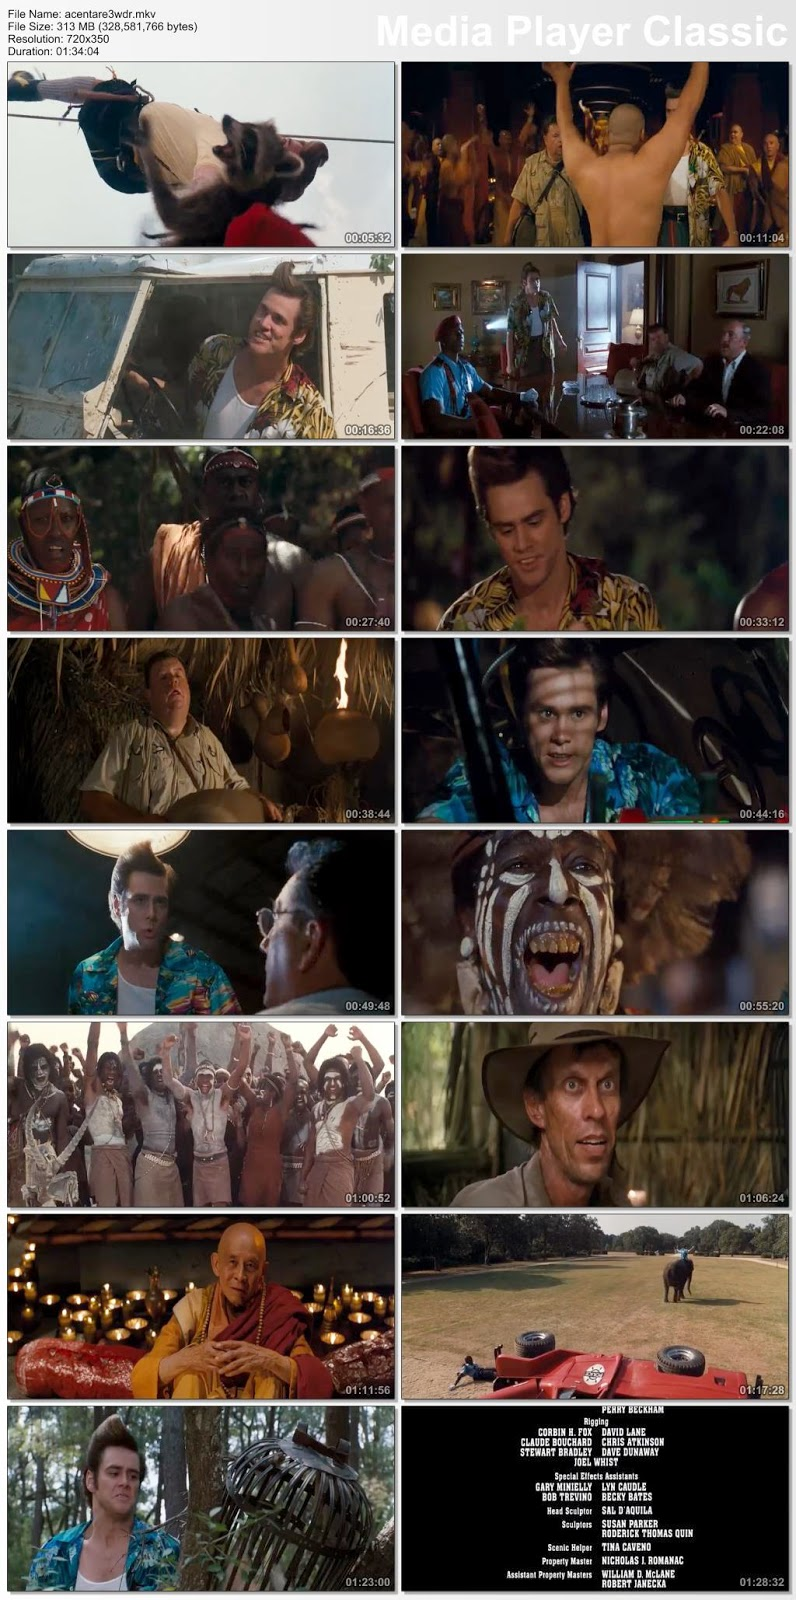 Ace Ventura When Nature Calls 1995 BRRip 480p 300mb ESub world4ufree.ws hollywood movie Ace Ventura When Nature Calls 1995 world4ufree.ws brrip bluray hd rip dvd rip web rip 300mb 480p compressed small size free download or watch online at world4ufree.ws